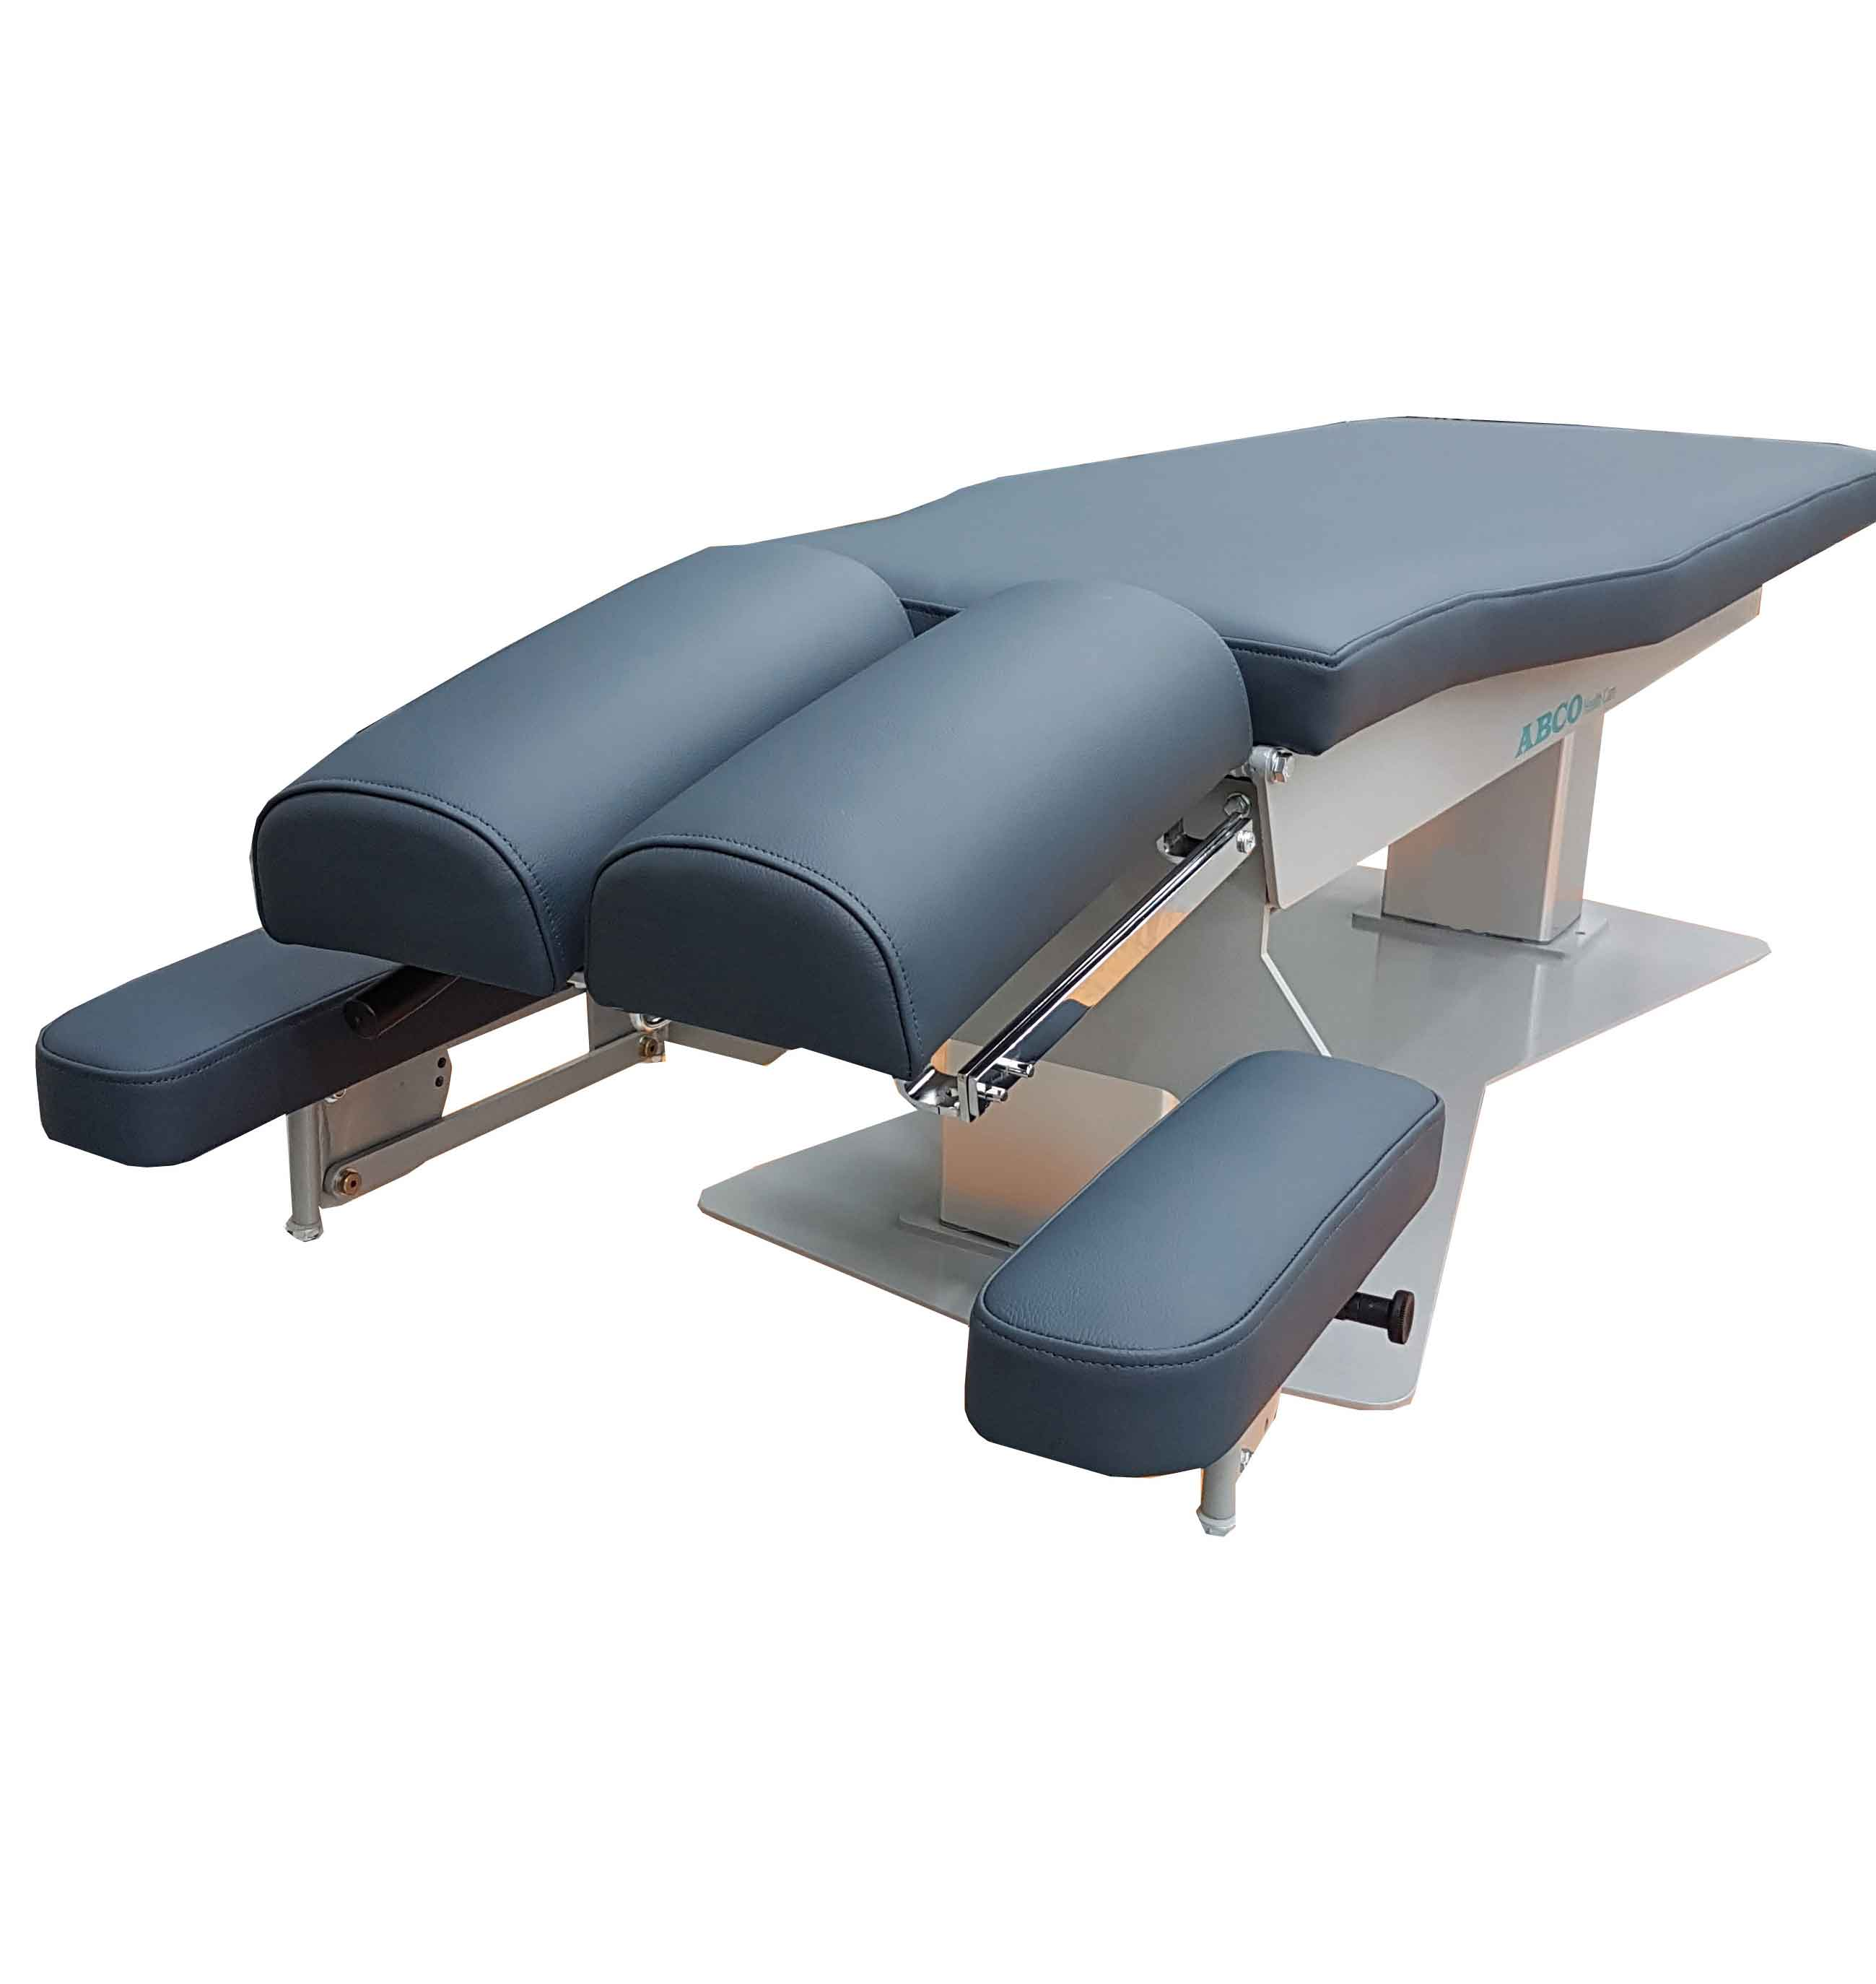 Awesome Abco Health Care Chiro T Chiropractic Table Home Interior And Landscaping Elinuenasavecom